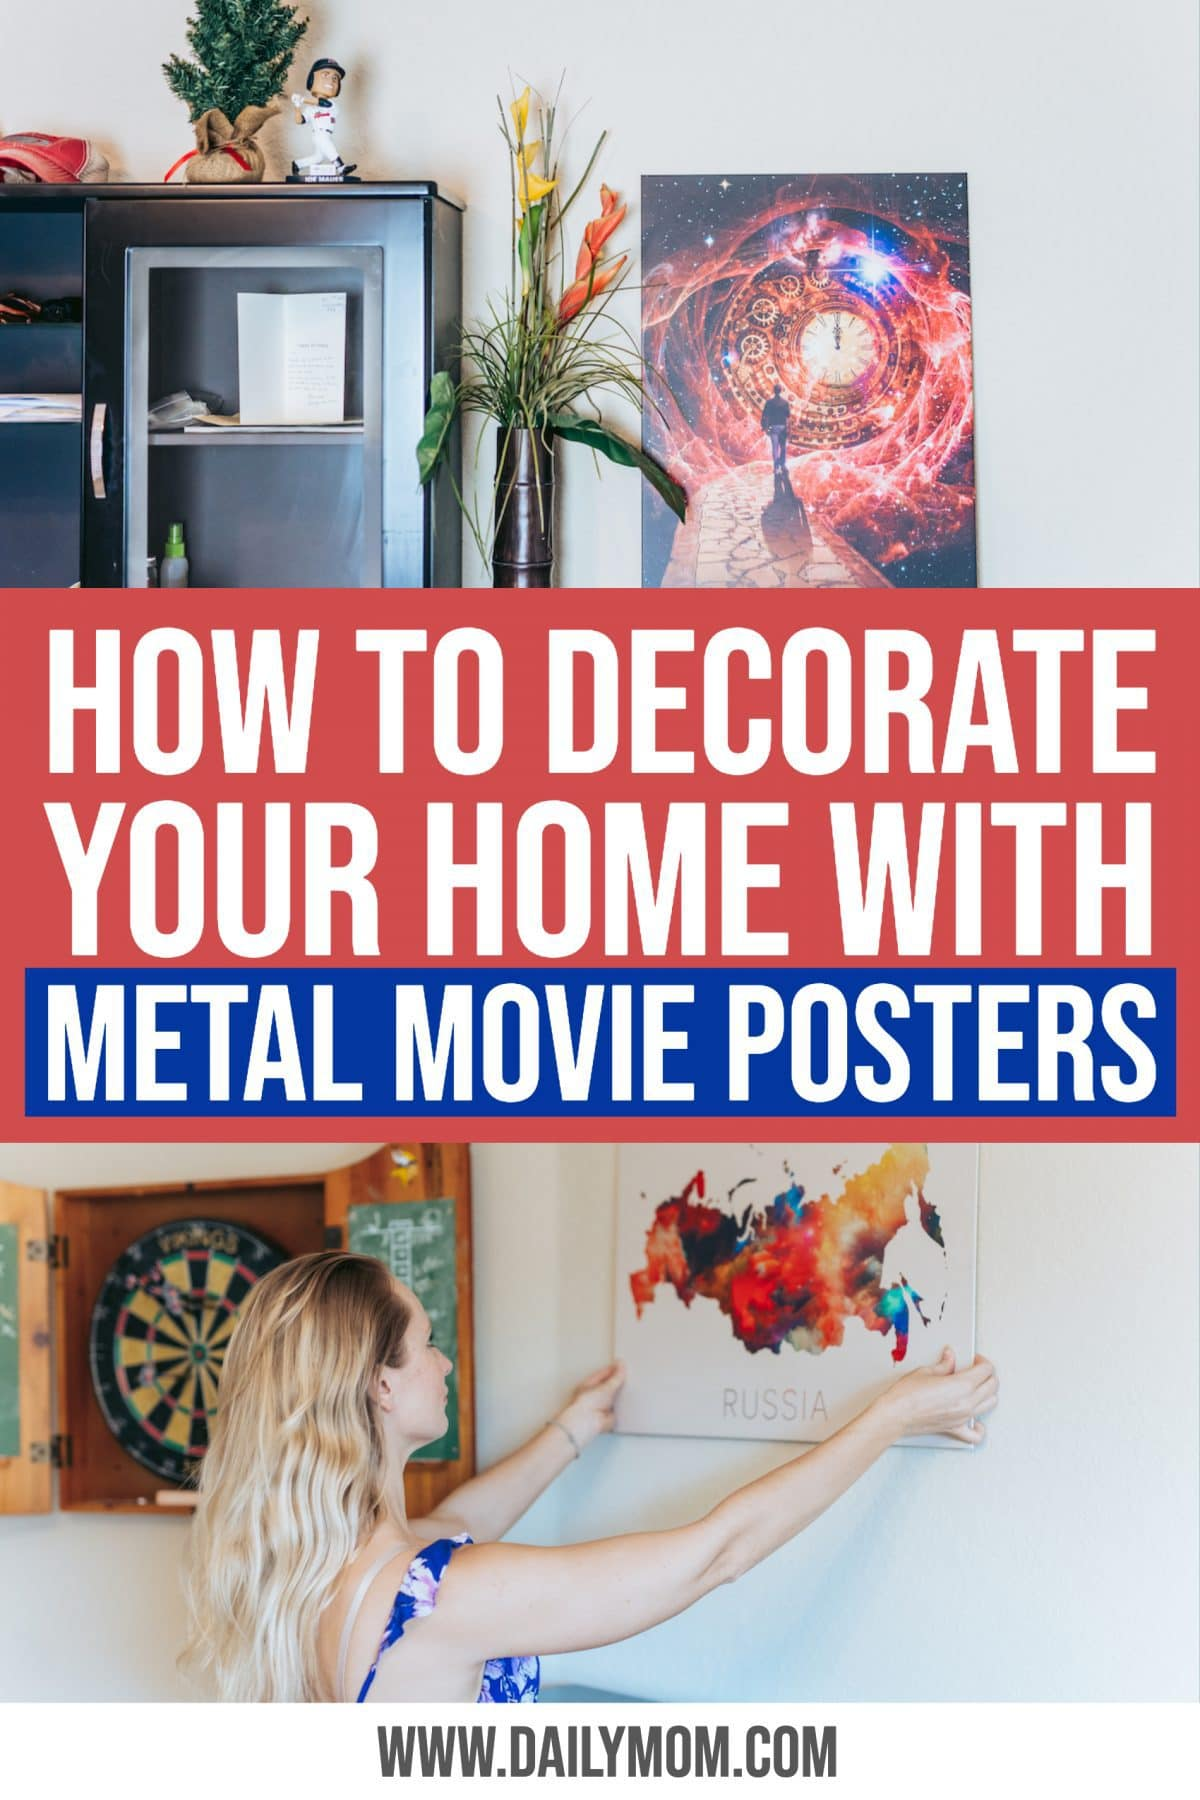 Metal Movie Posters By Displate: A Review